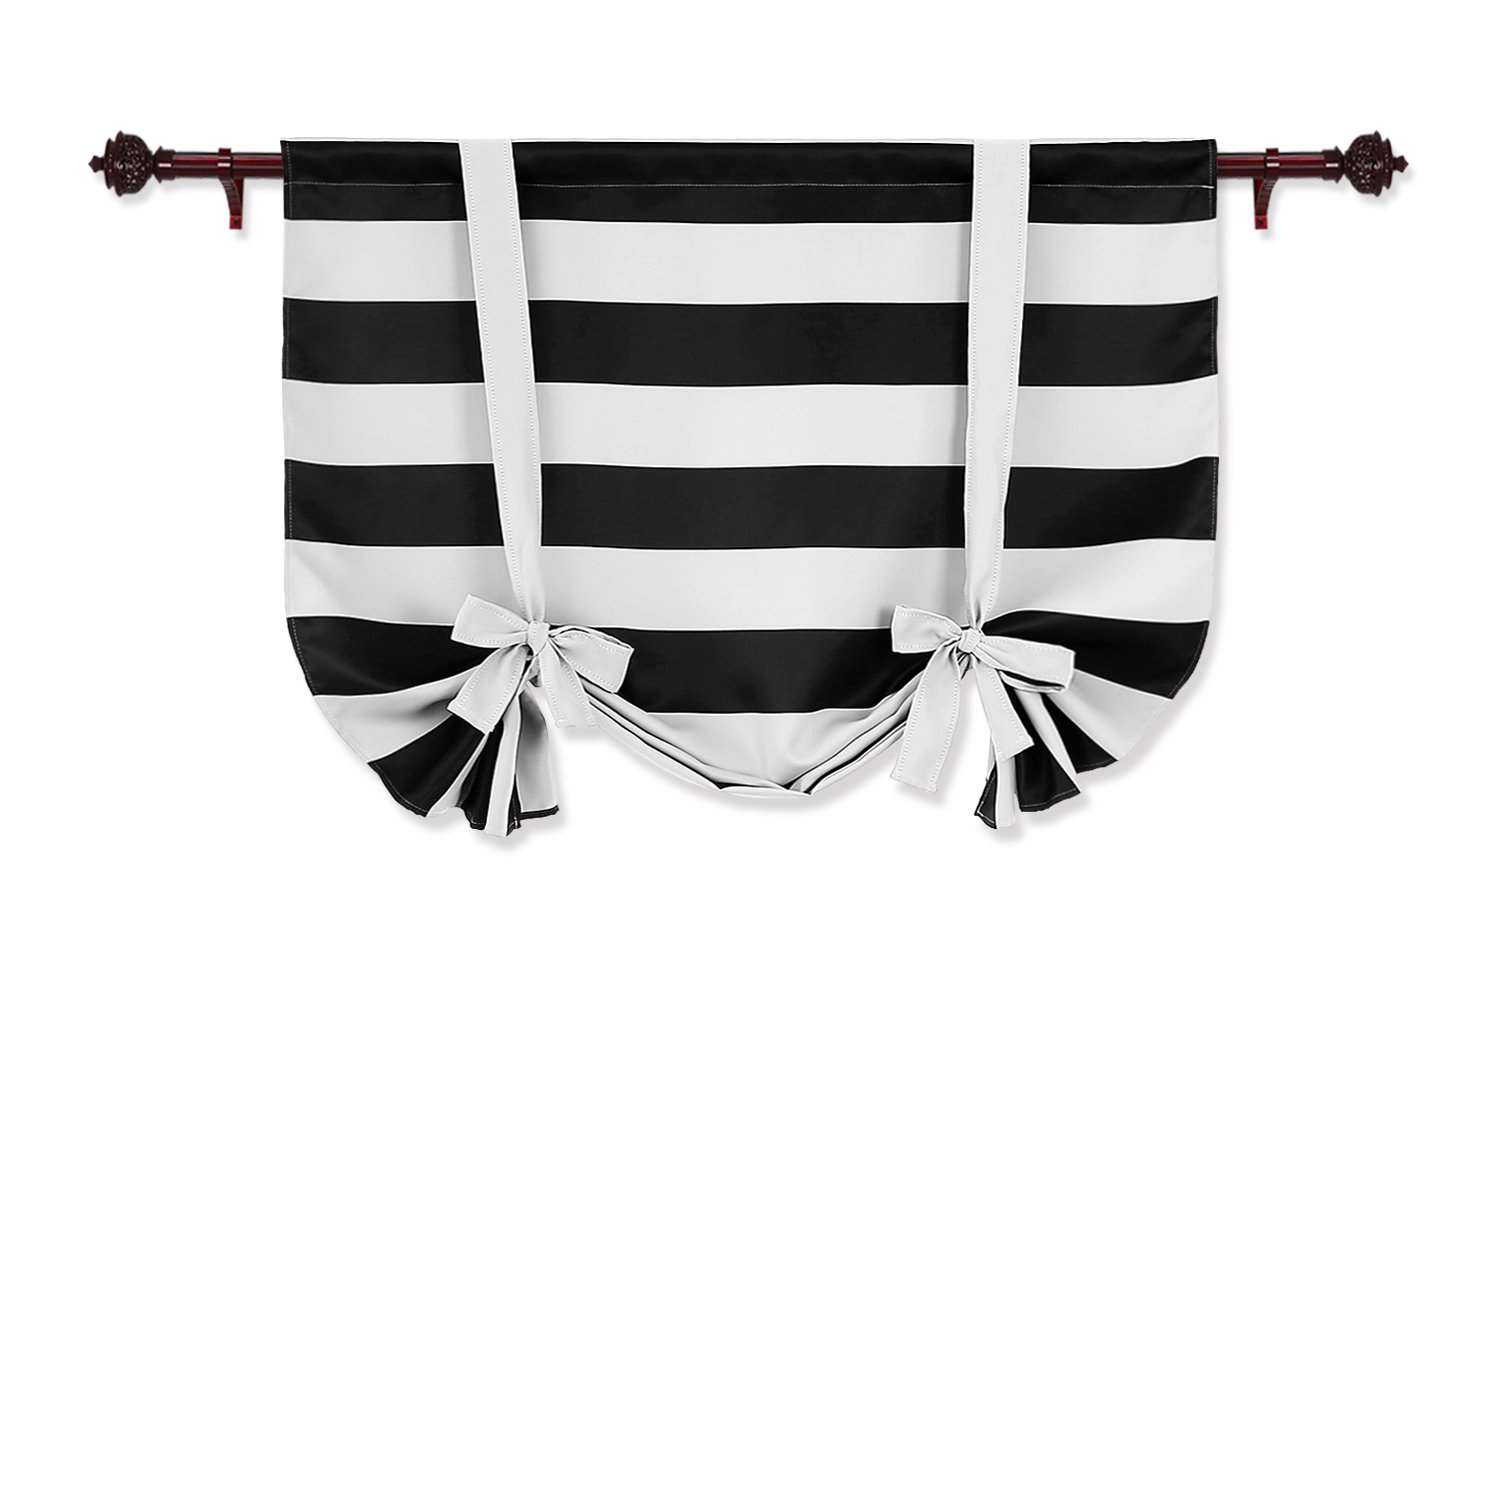 Deconovo Striped Blackout Curtains Rod Pocket Black and White Striped Curtains Tie Up Window Drapes for Living Room 46W X 45L Black 1 Panel Curtains